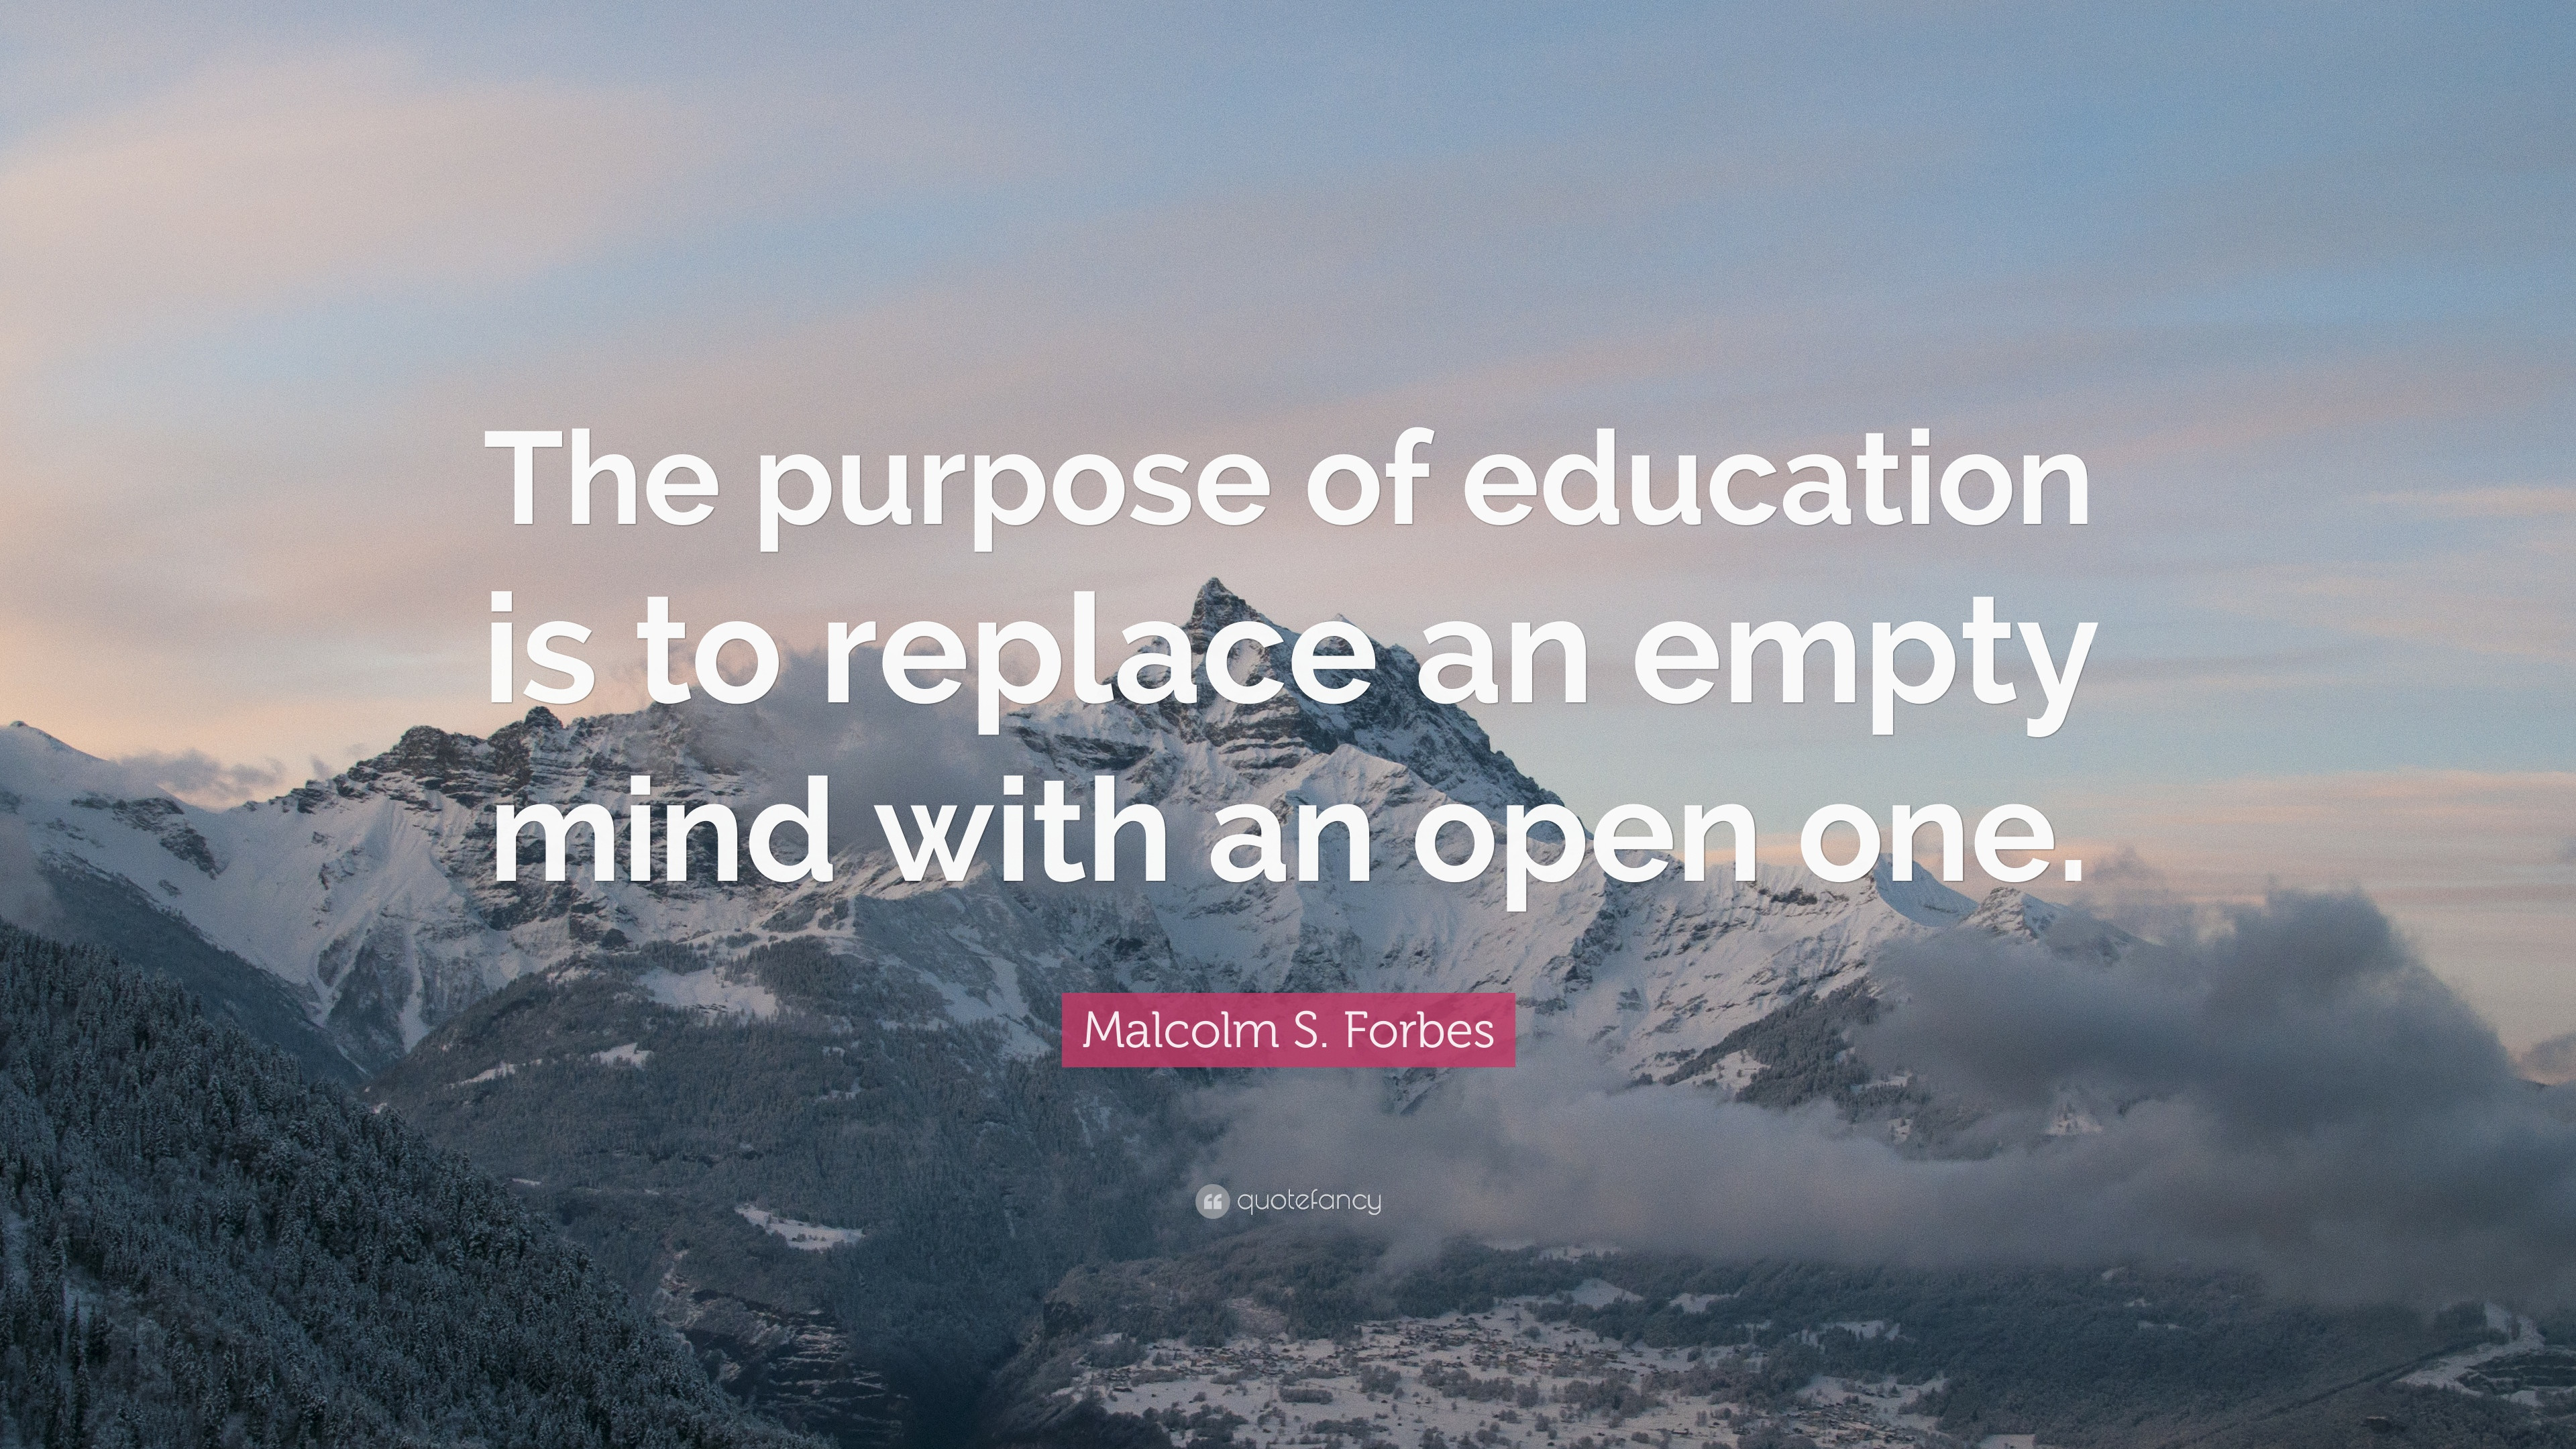 Purpose Of Education Quotes  Education Quotes Askideas